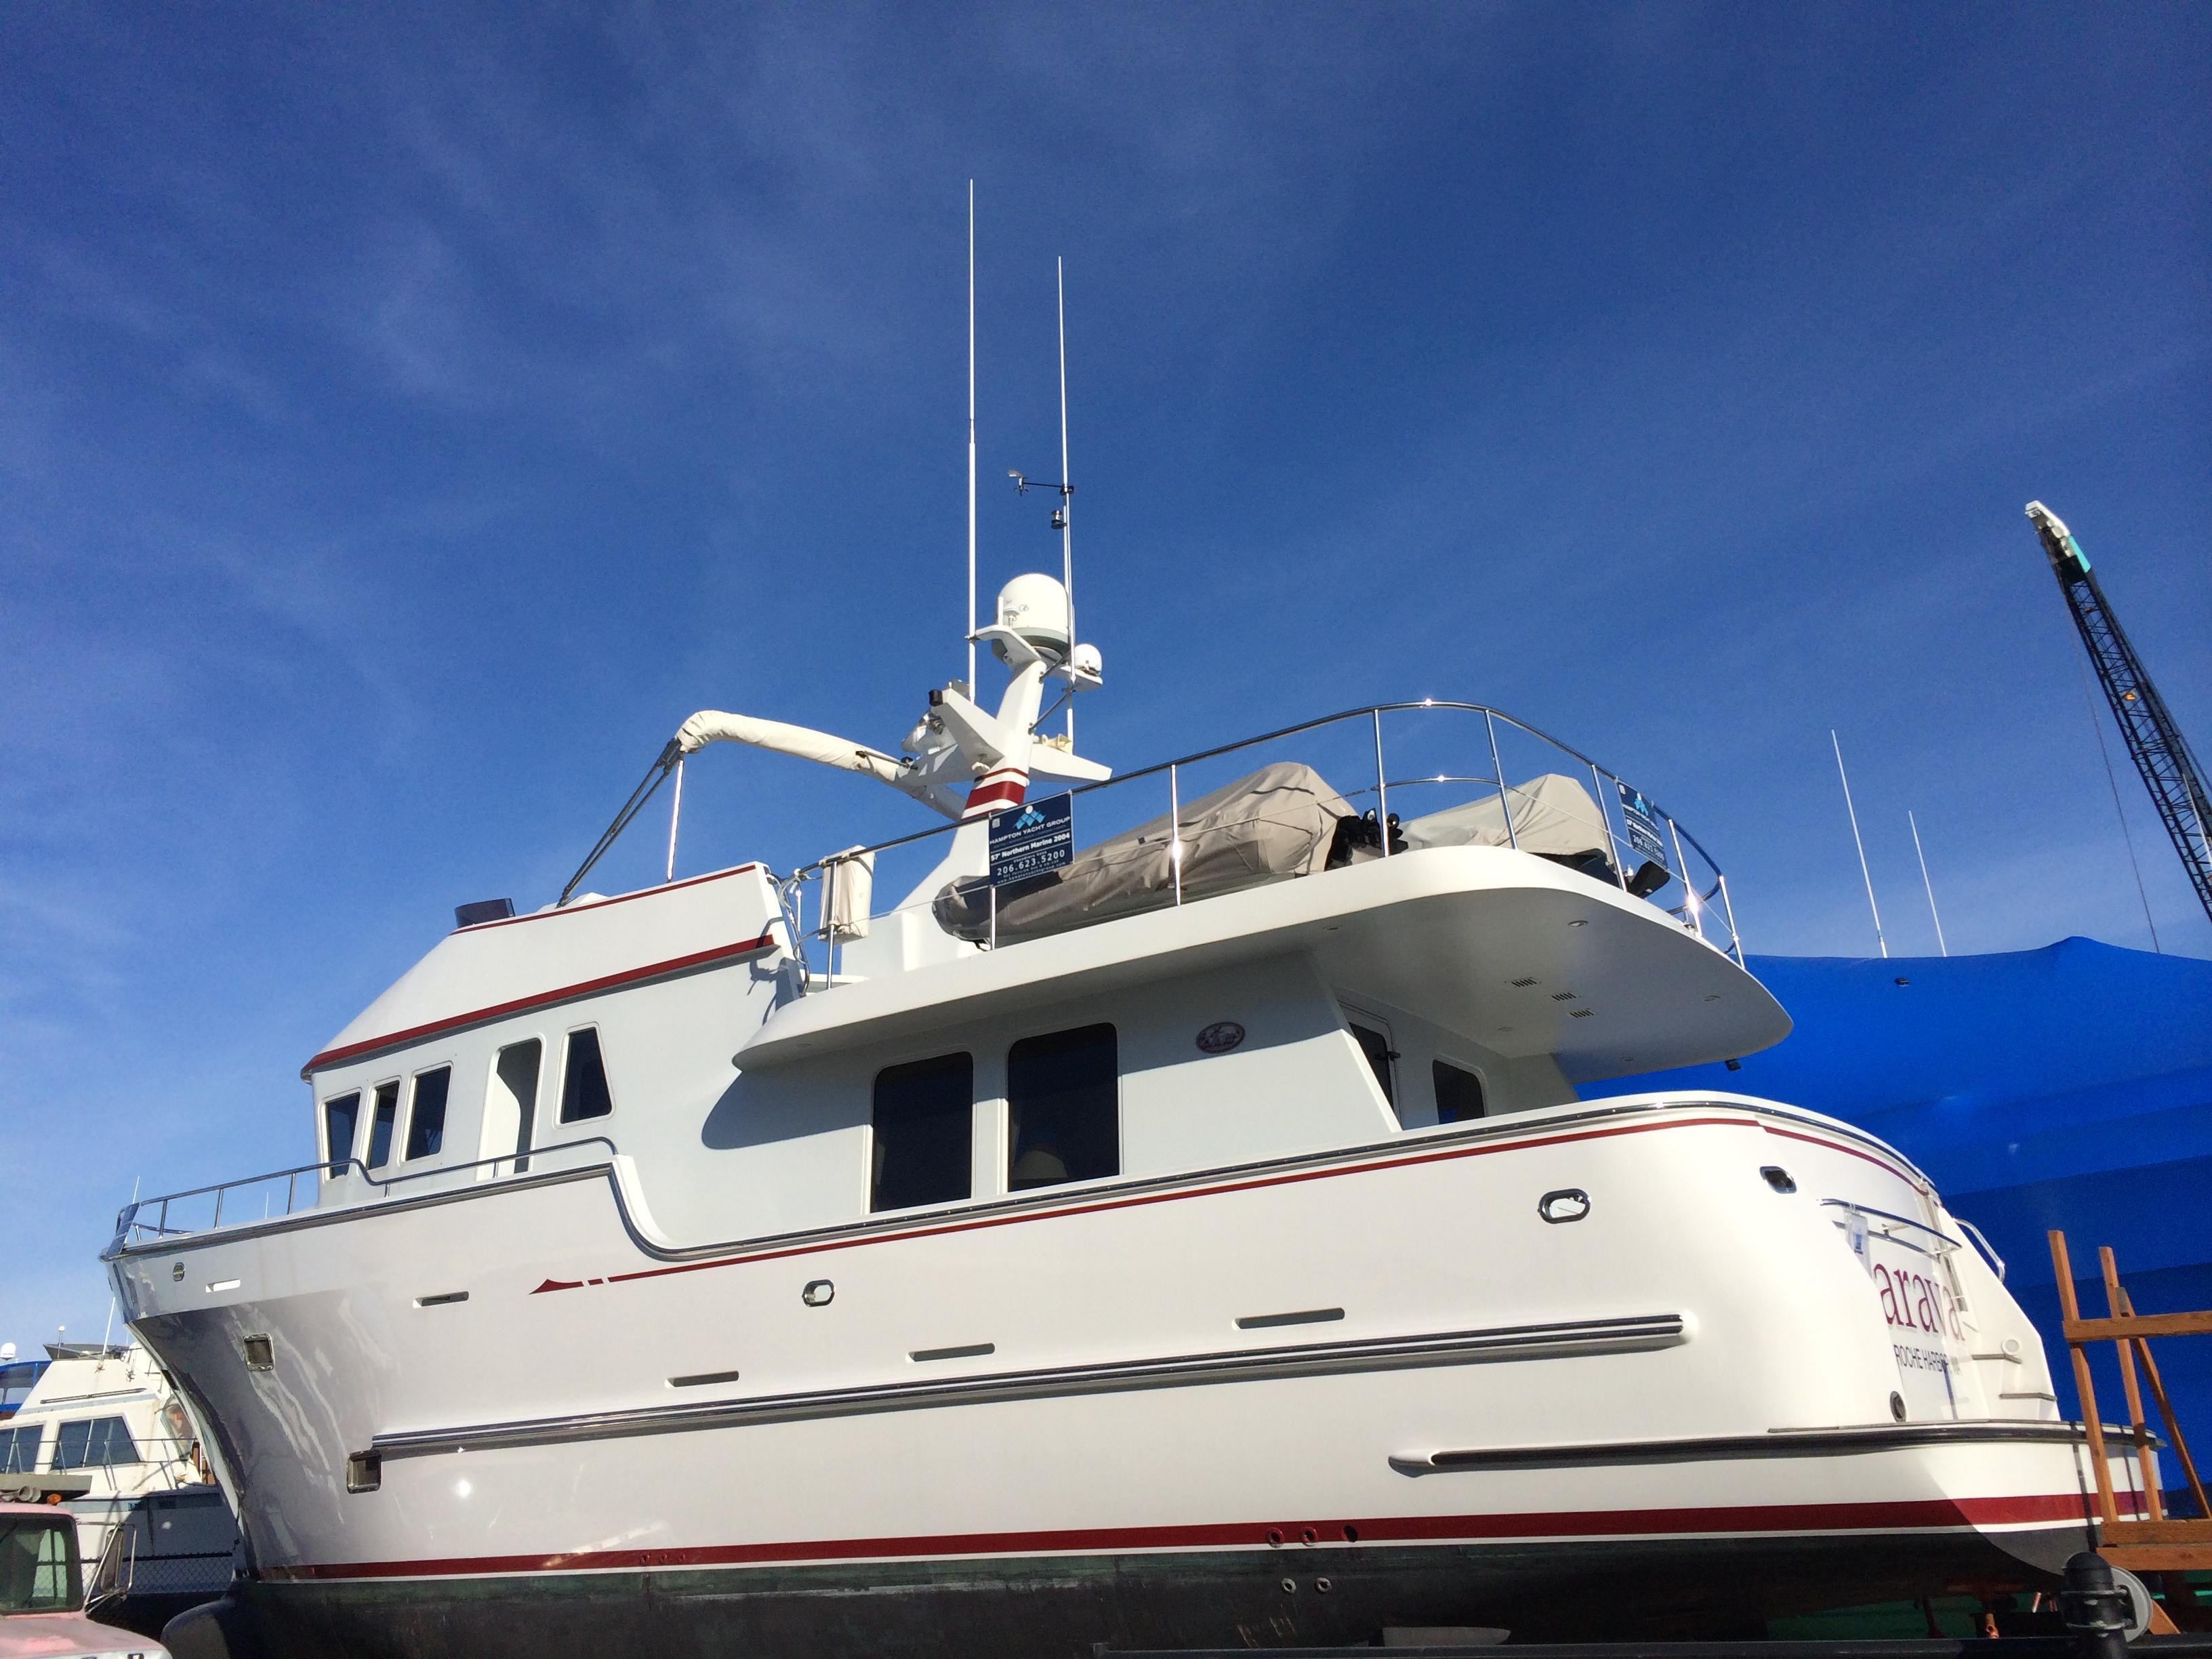 Northern Marine 57' Raised Pilothouse LRC, Anacortes